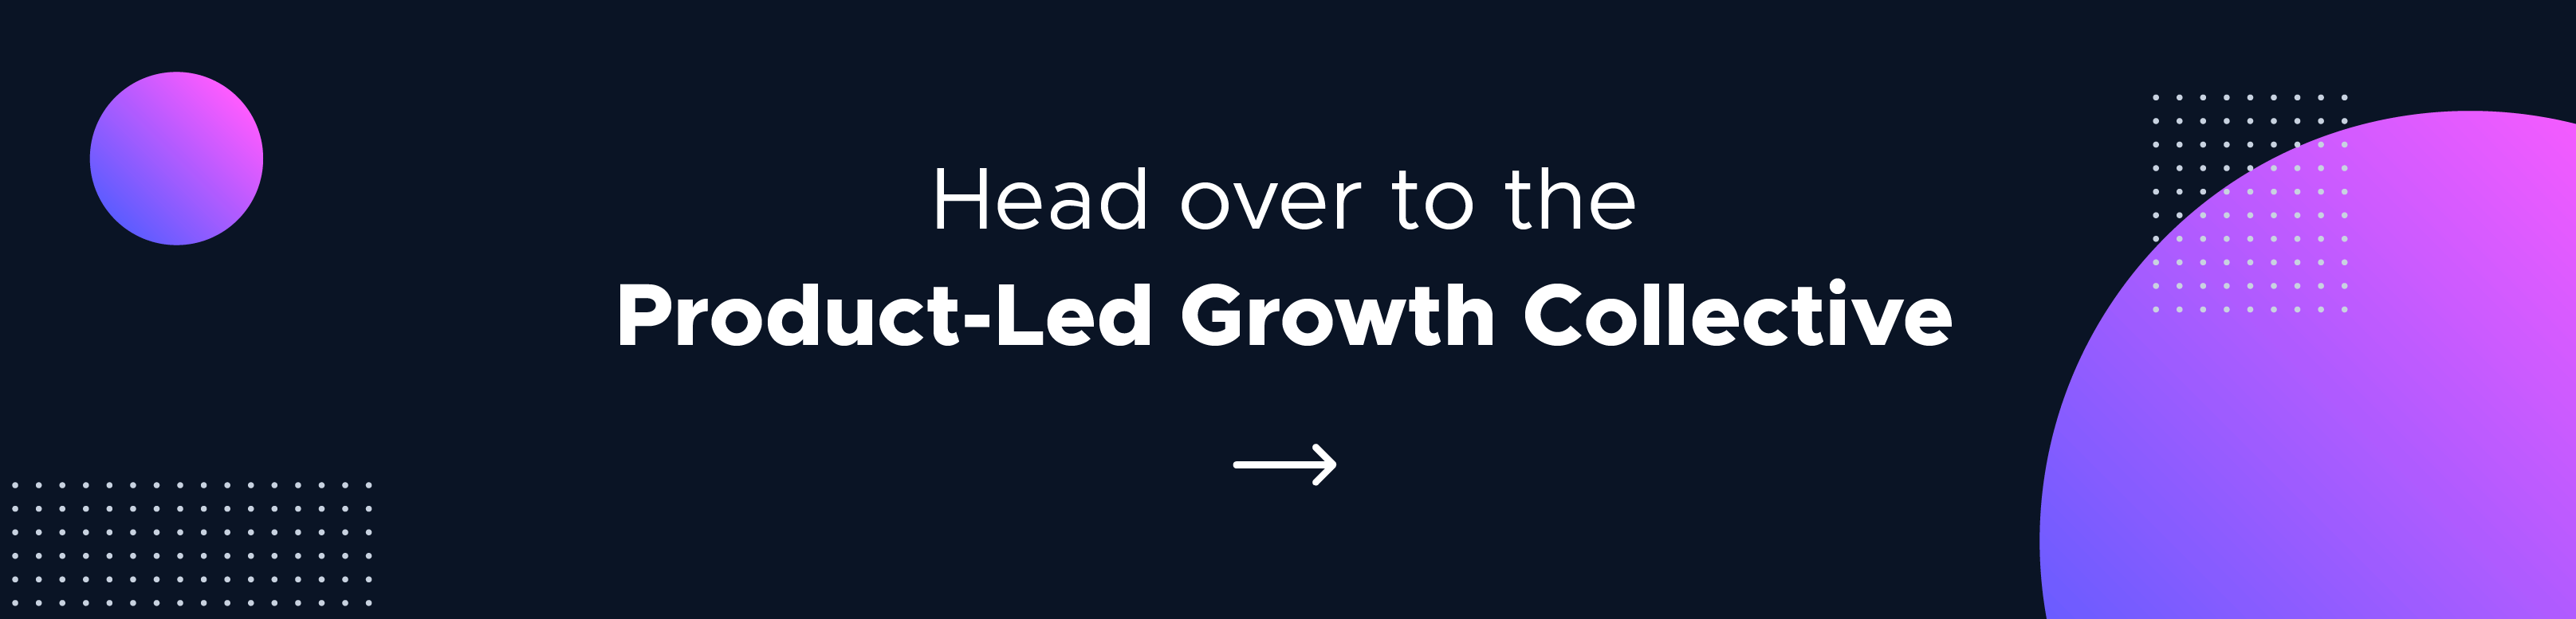 Click here to go to the Product-Led Growth Collective. This is an in-line banner CTA.